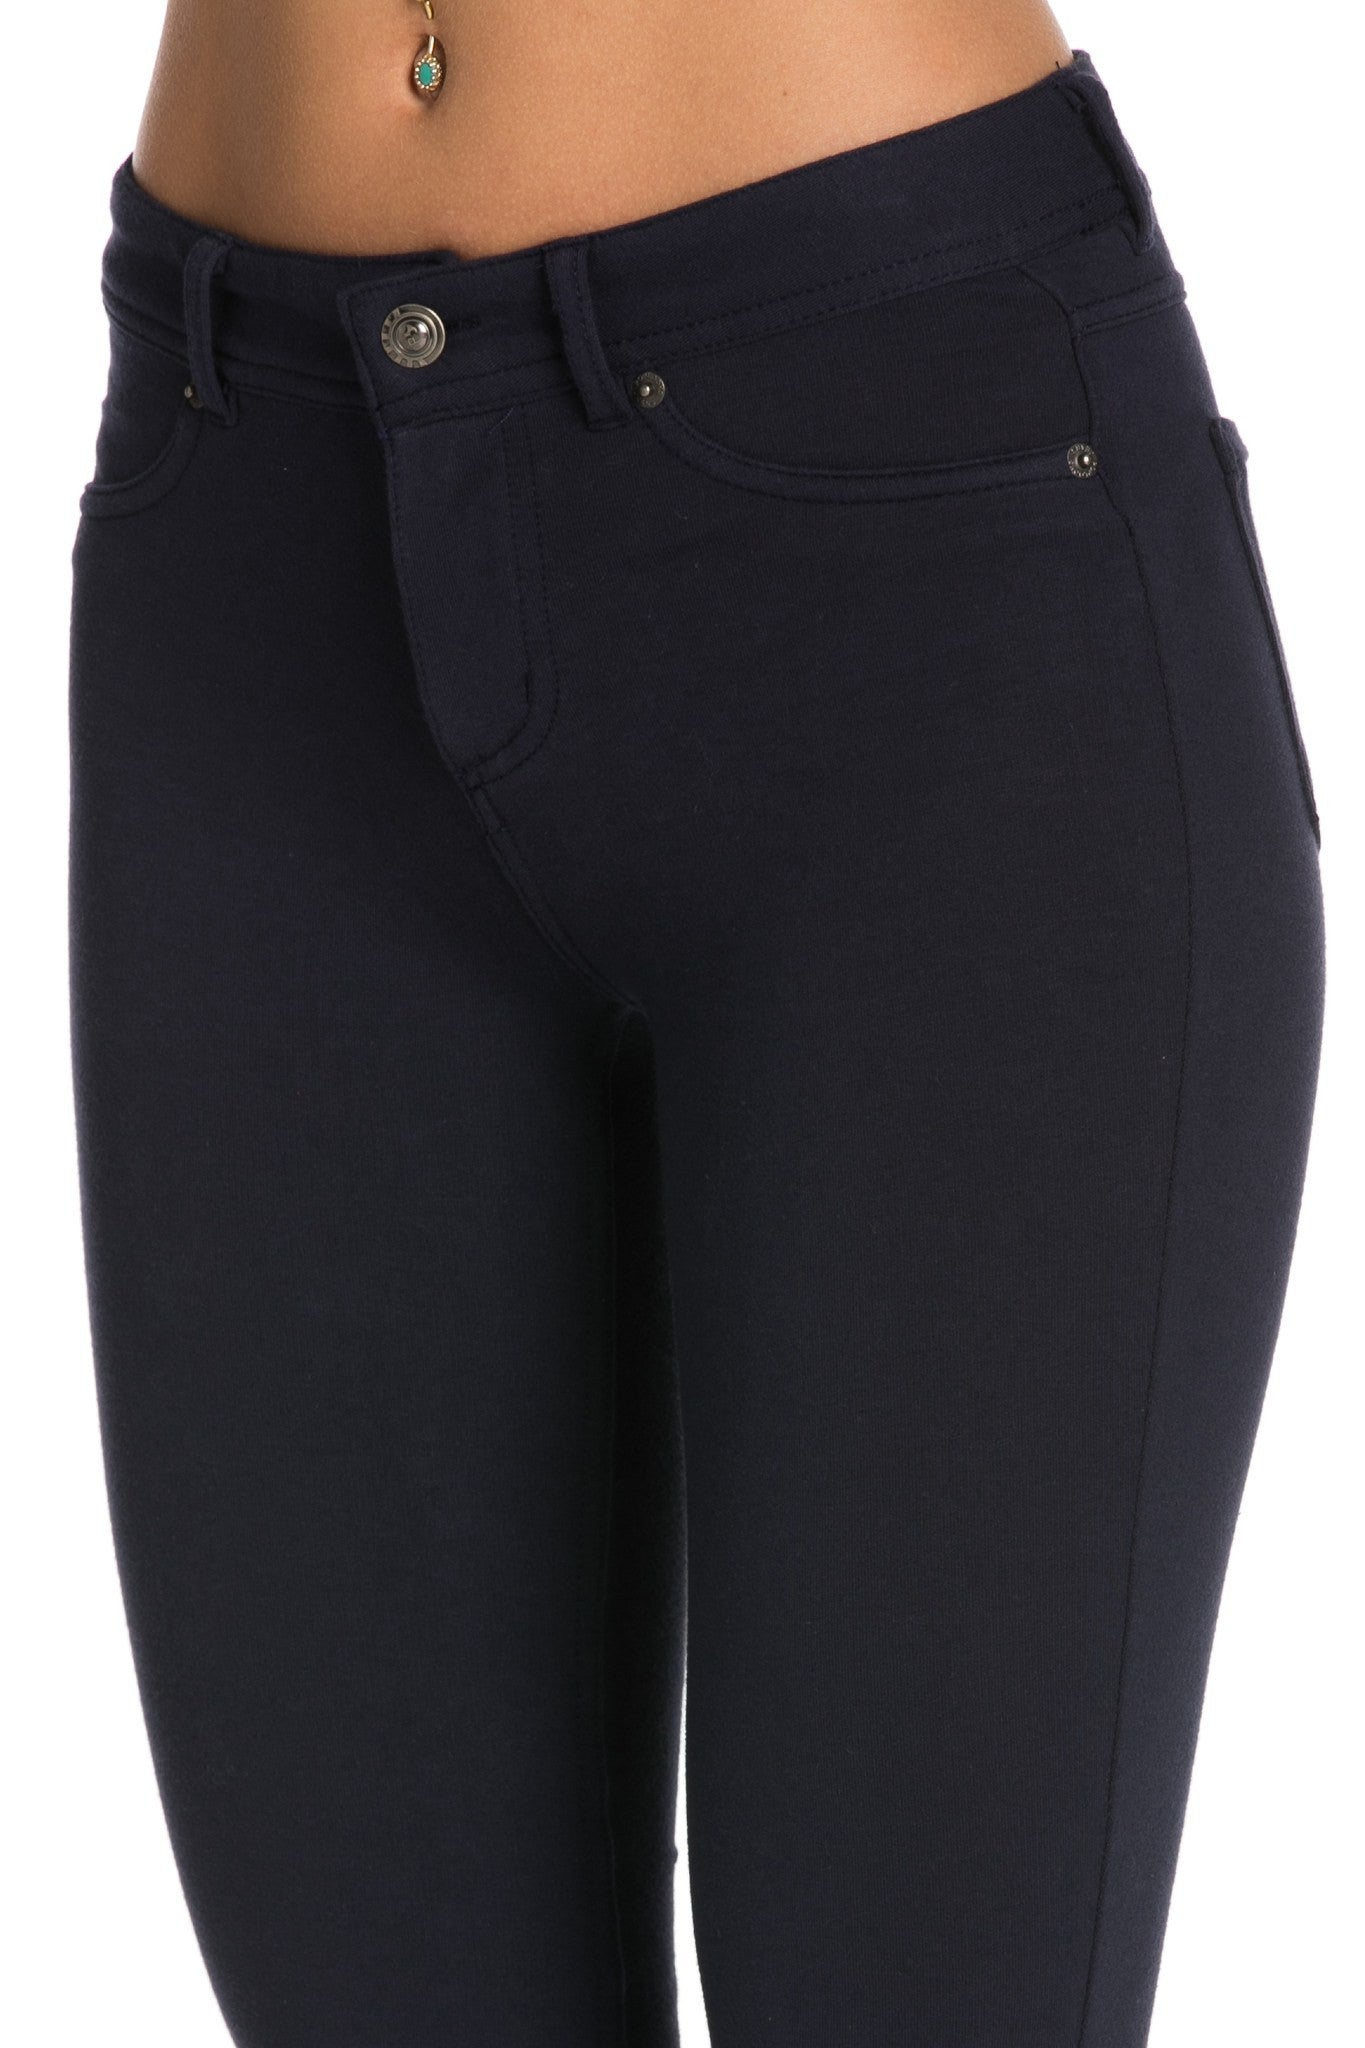 Stretch Skinny Knit Jegging Pants (Navy) - Poplooks